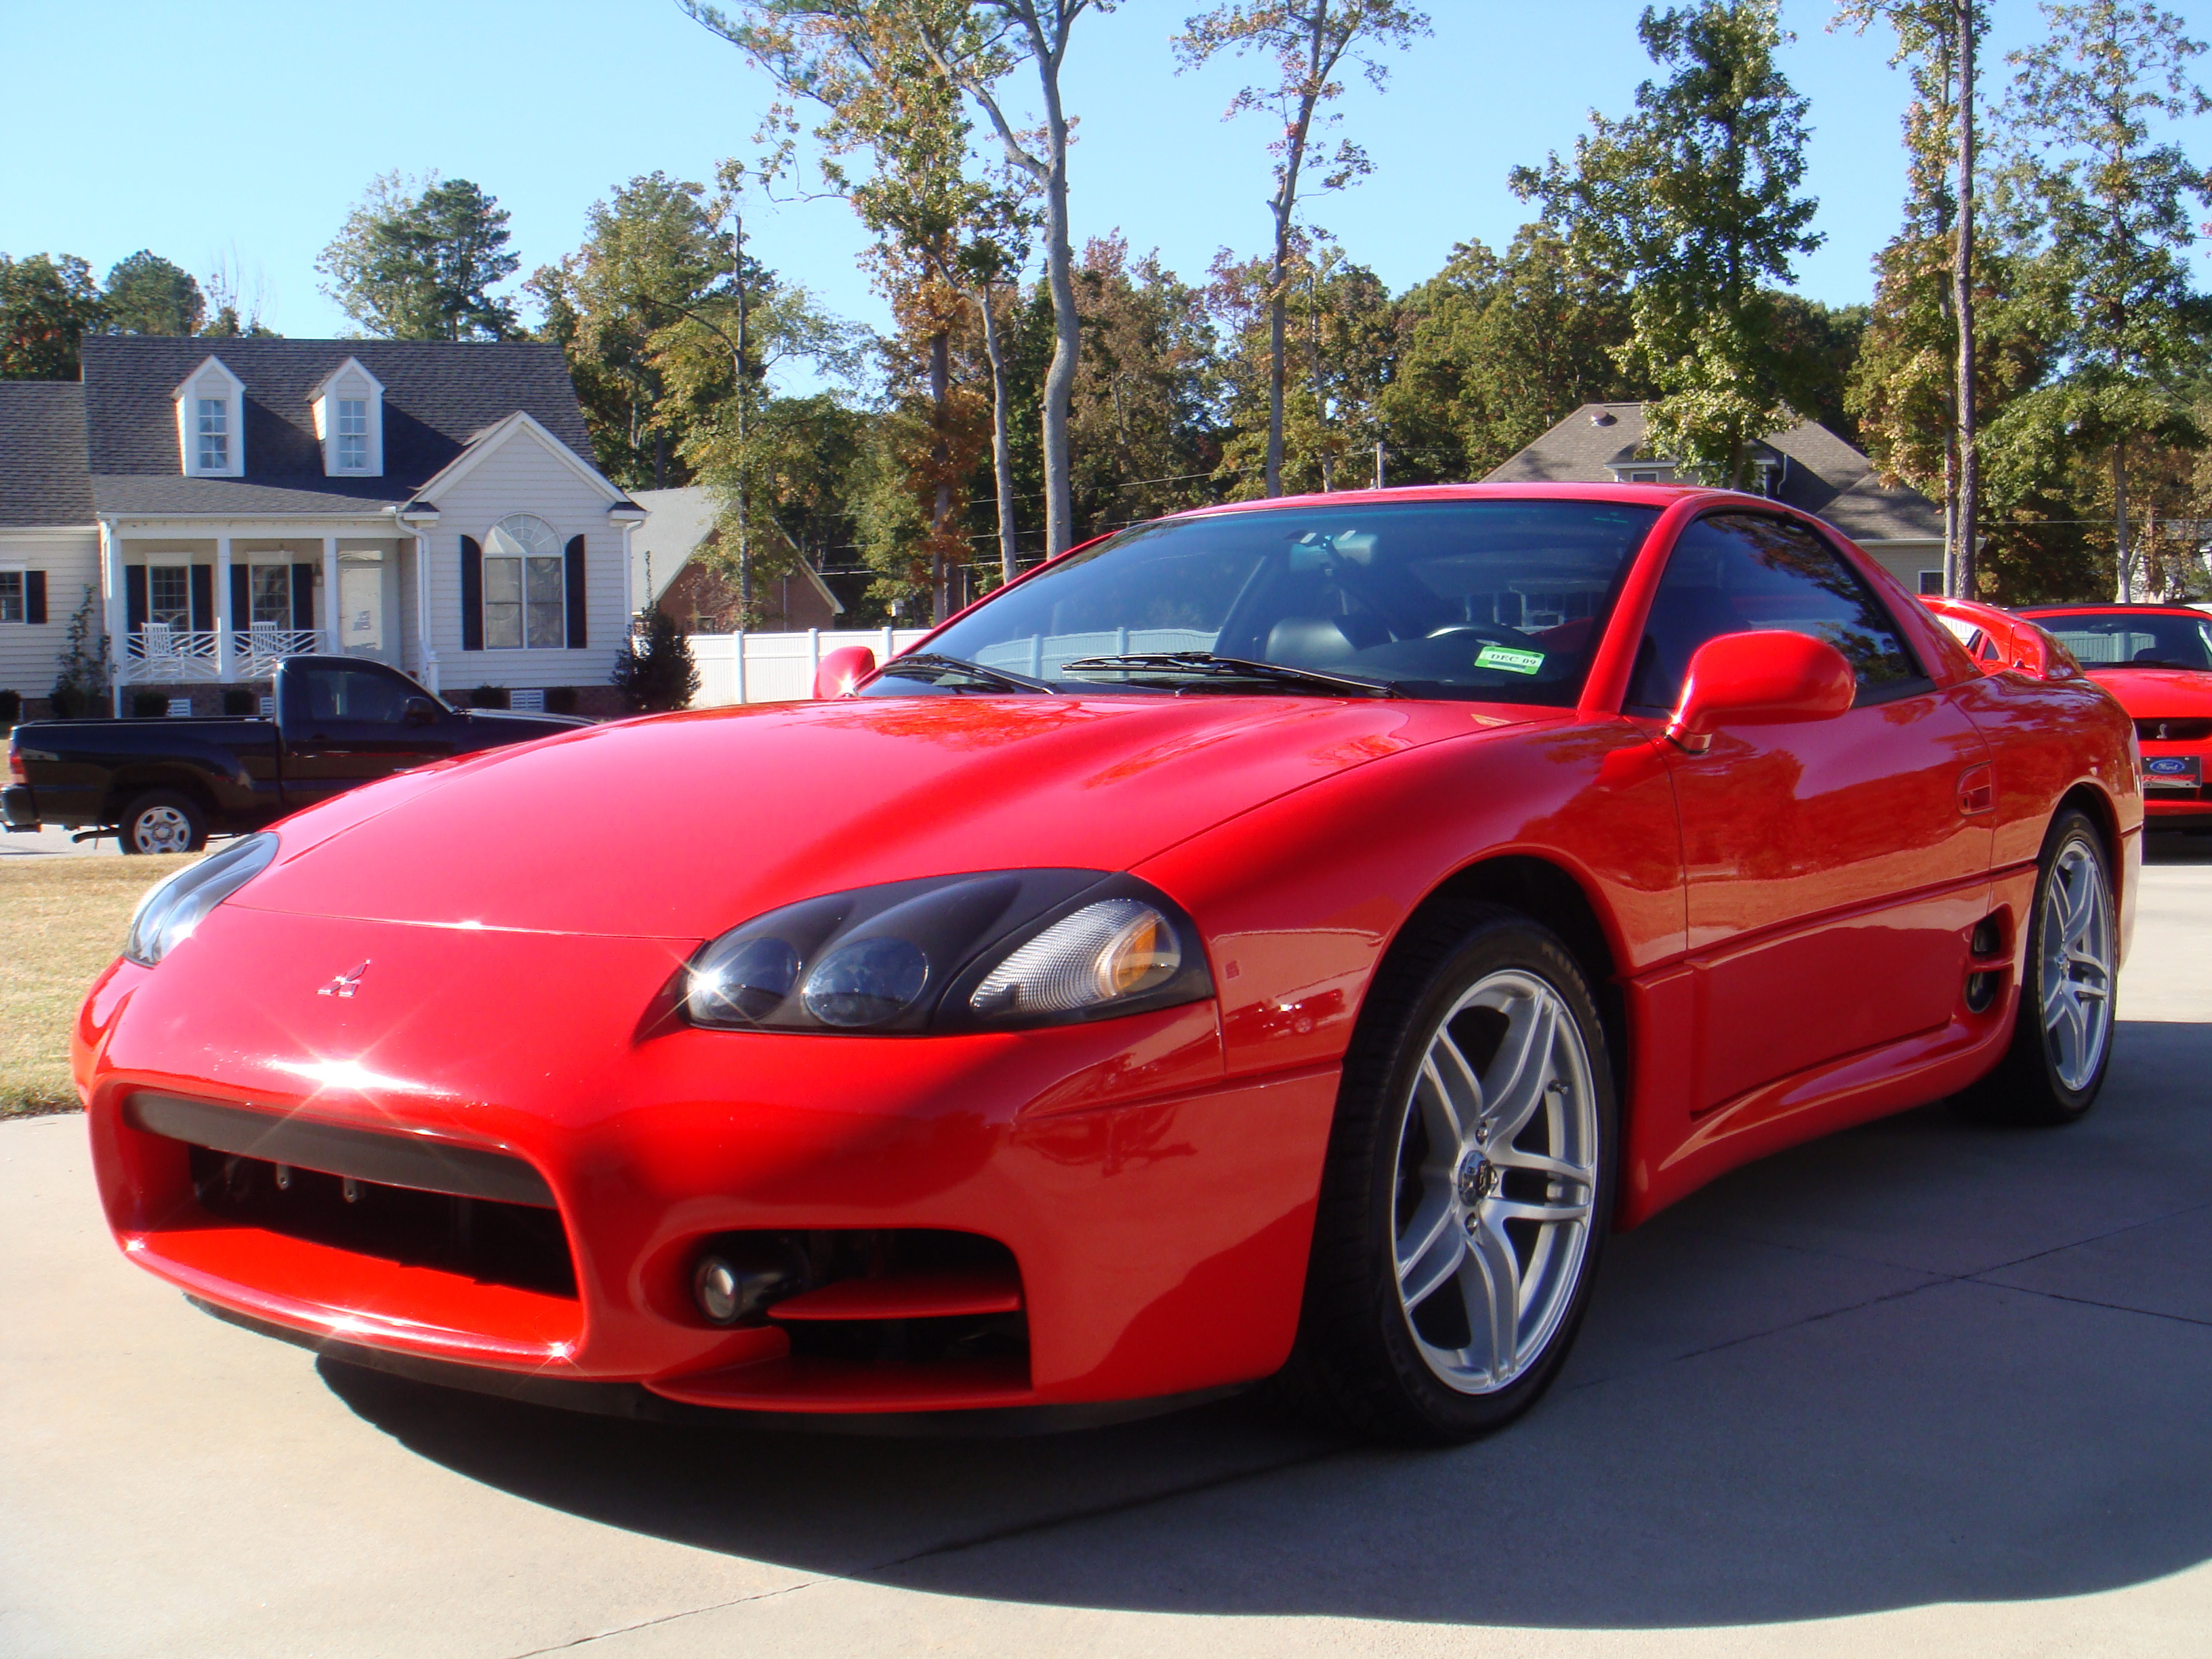 mystic3si 39 s 1999 mitsubishi 3000gt in wilson nc. Black Bedroom Furniture Sets. Home Design Ideas